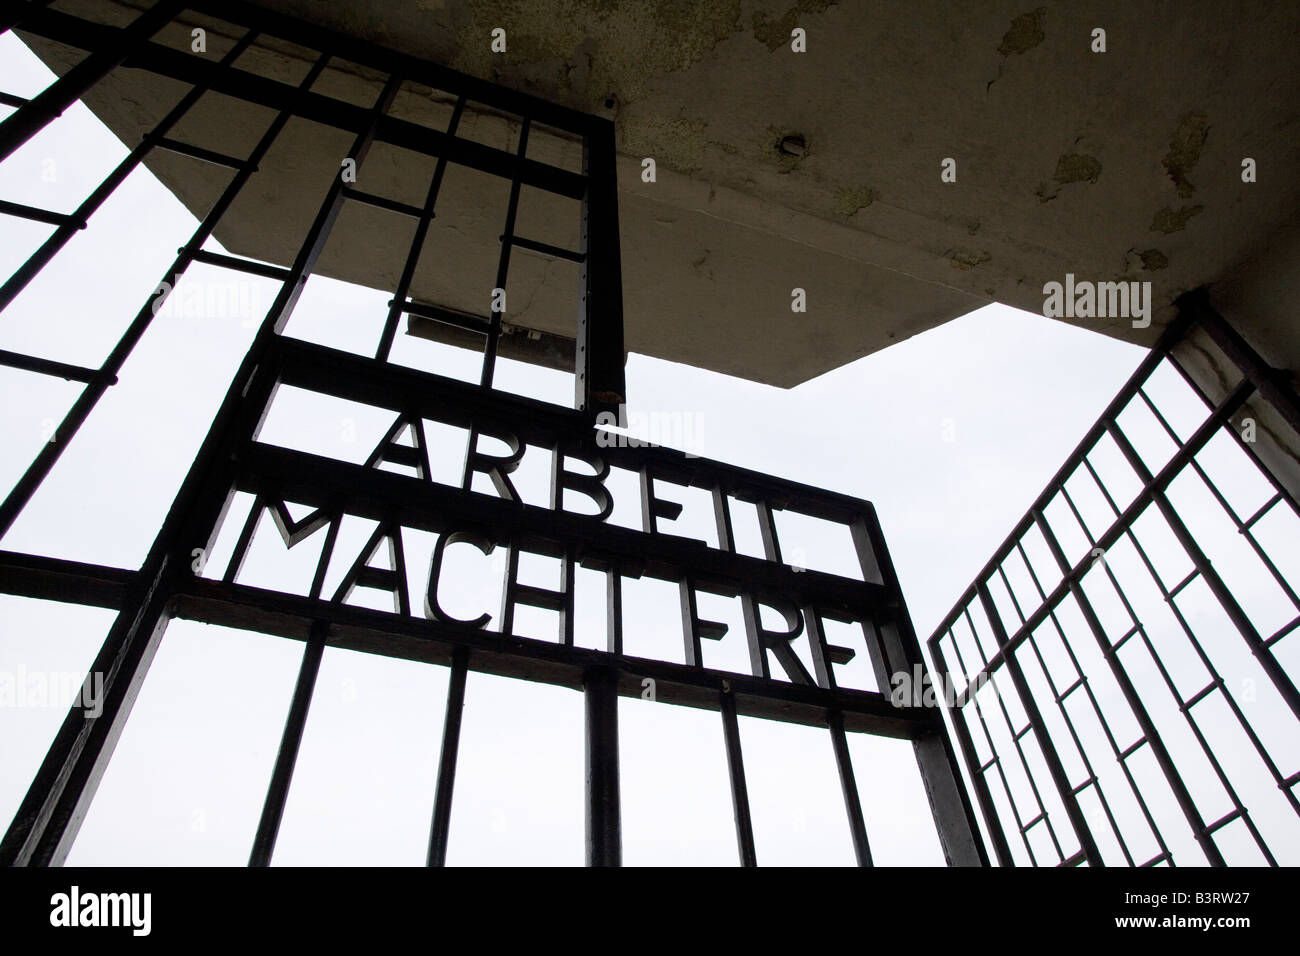 Memorial site Concentration Camp Sachsenhausen slogan Arbeit macht frei at the entrance of the concentration camp - Stock Image